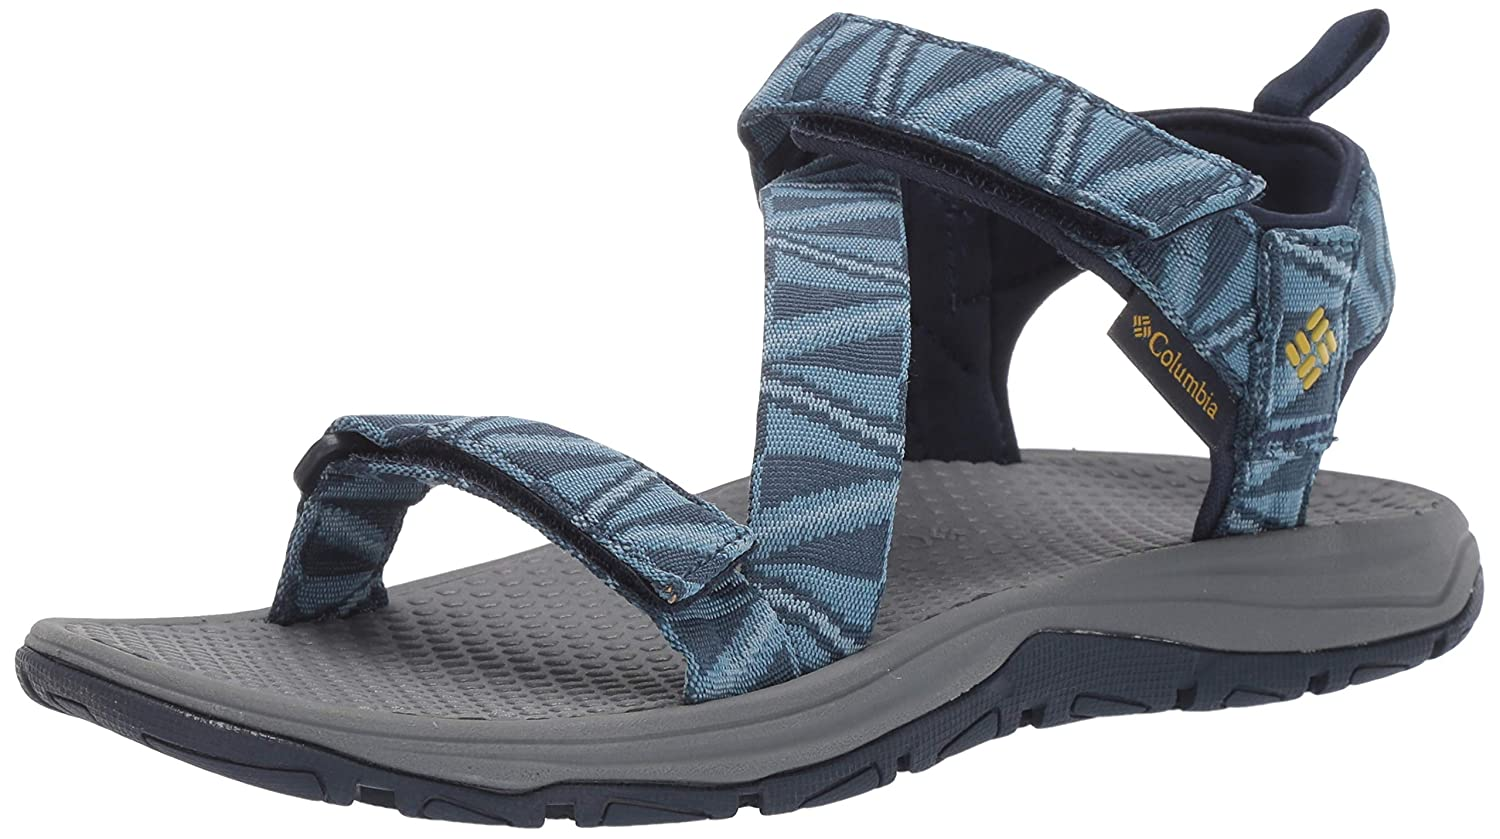 751237a7 Amazon.com | Columbia Men's Wave Train Sandal, whale, antique moss, 7  Regular US | Sport Sandals & Slides